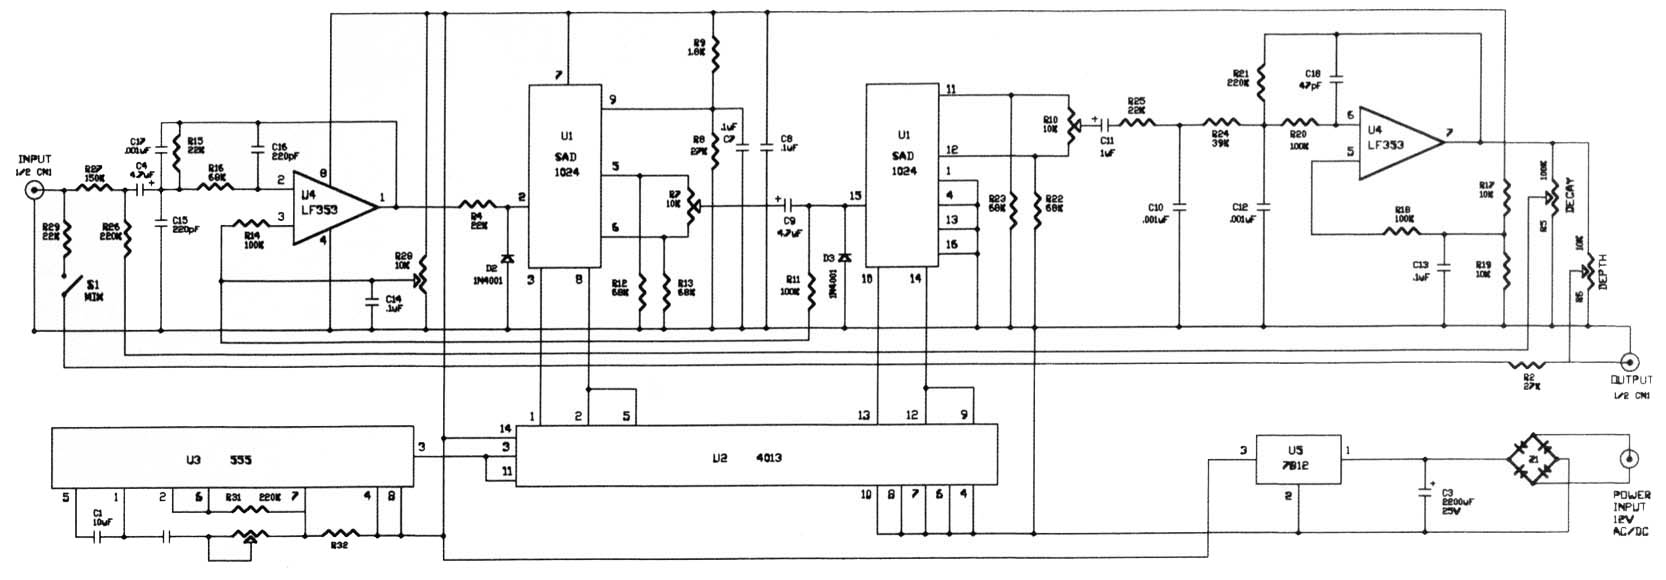 Dan Electro Input Wiring Diagram 32 Images Danelectro Guitar Lupine Systems Sad1024 Delay Experimentalists Anonymous Diy Archives Jimmy Page At